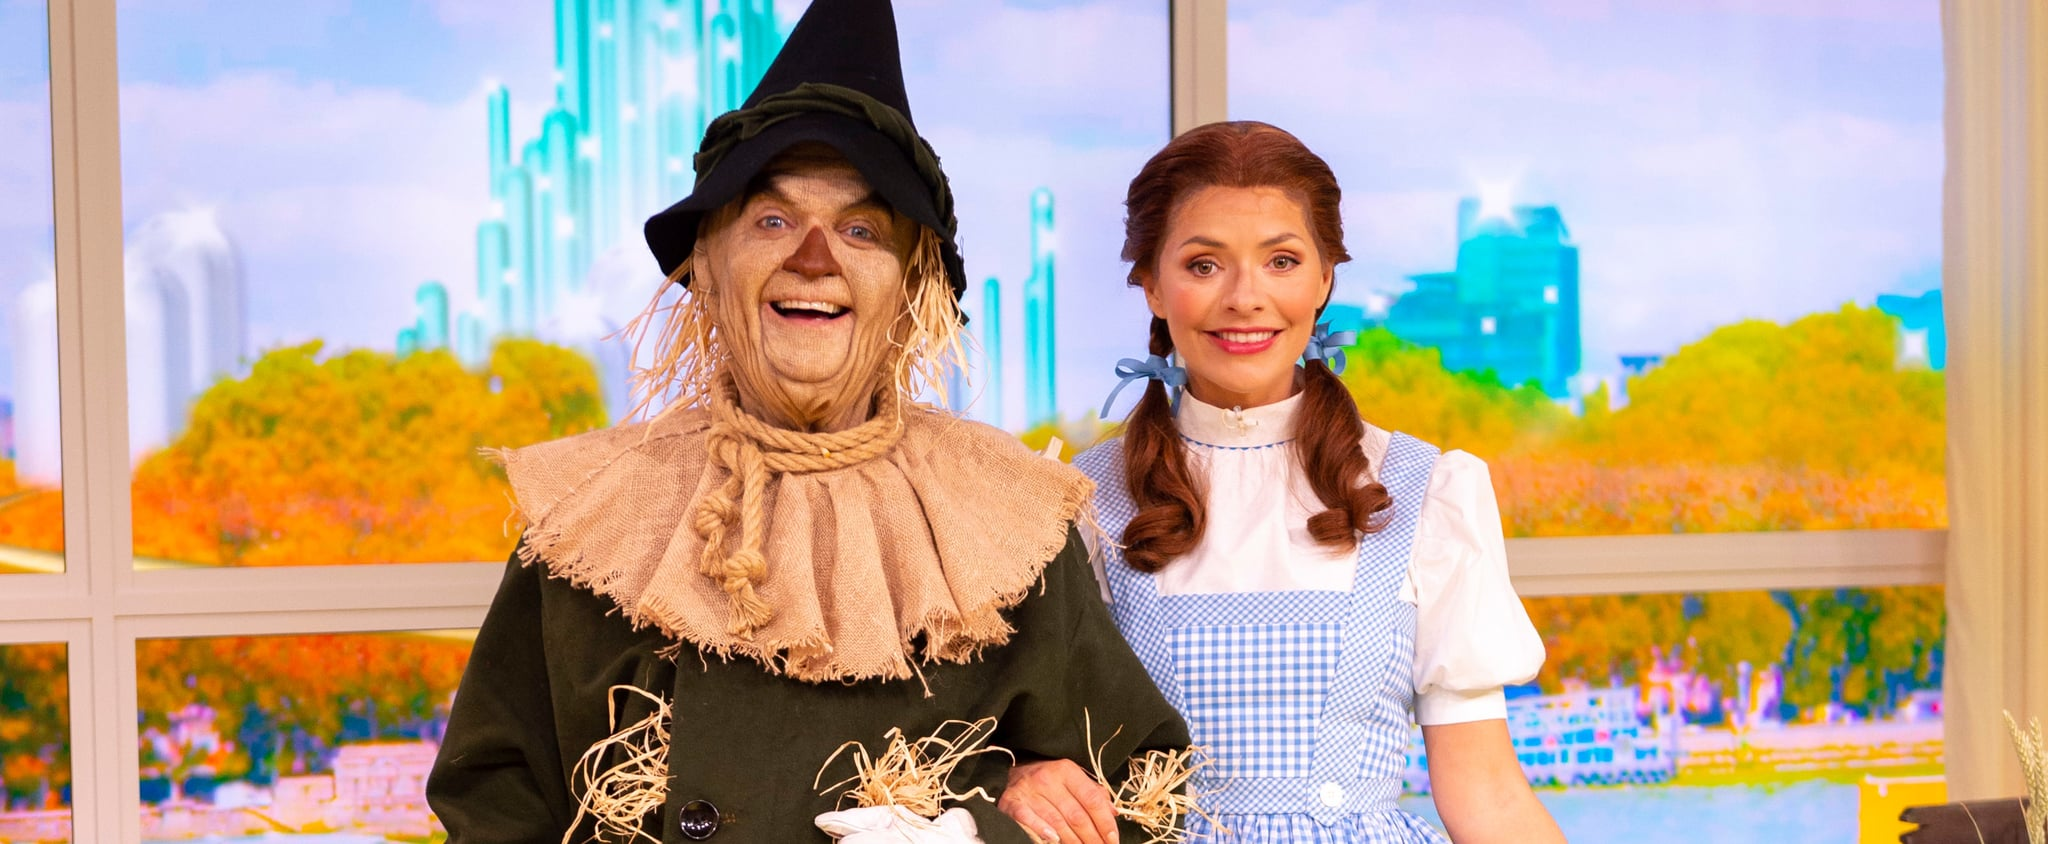 Holly Willoughby's Best Halloween Costumes Over the Years